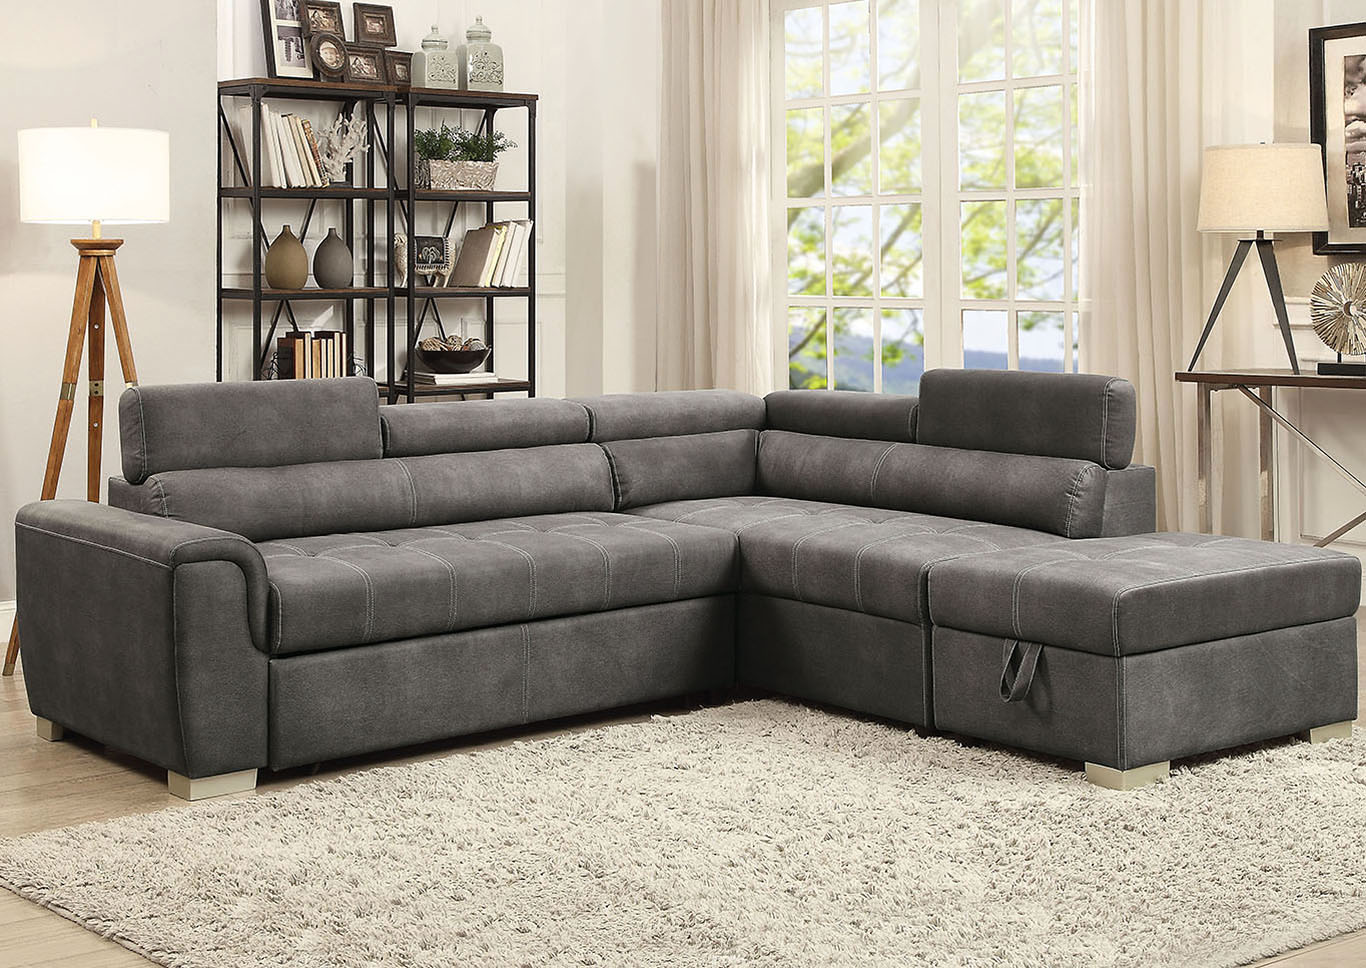 Albert\'s Home Furnishings Thelma Gray Microfiber Sectional ...